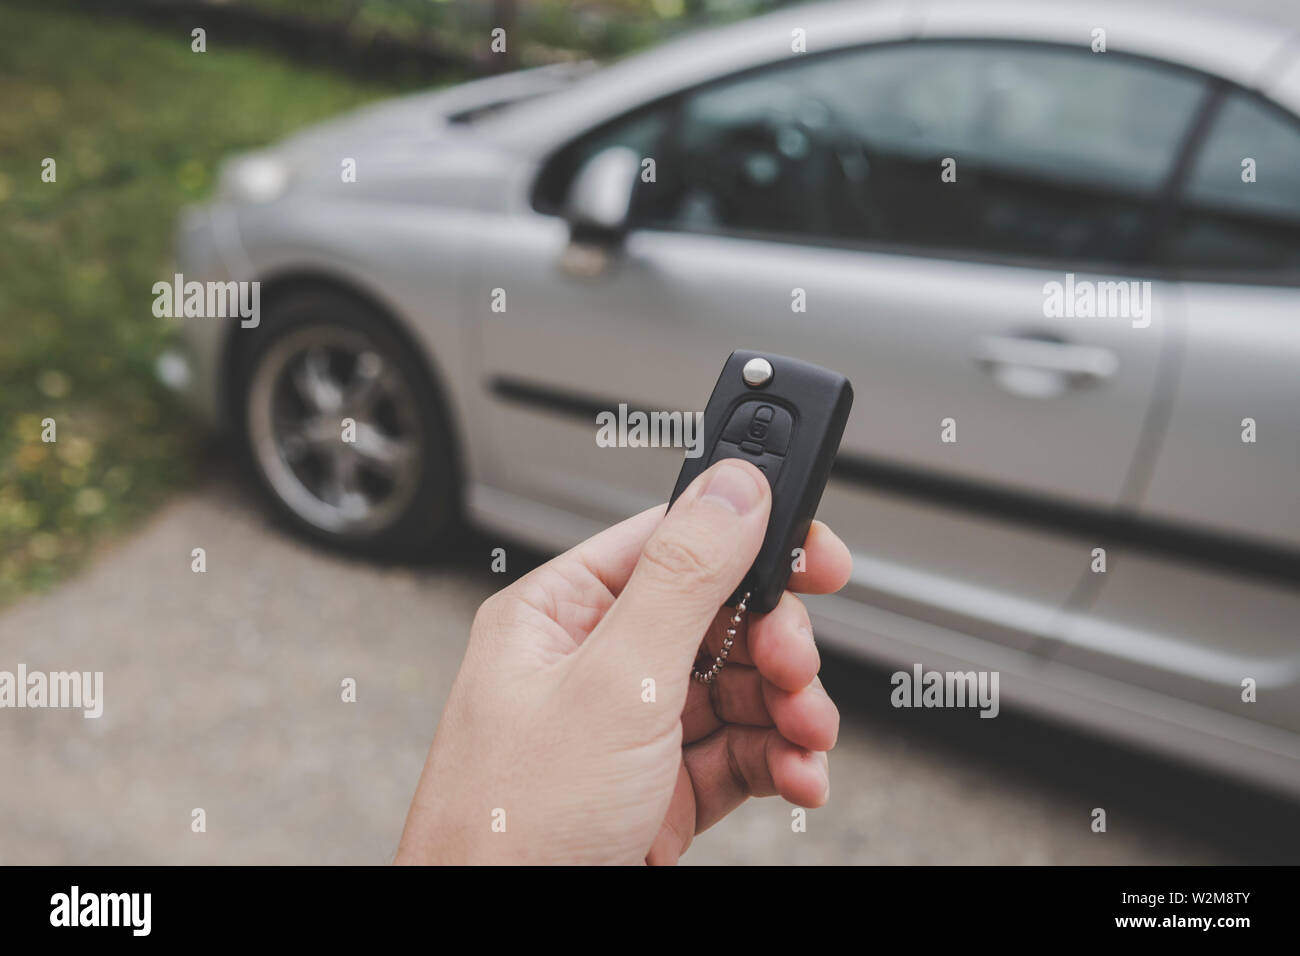 Male car owner switches off the alarm system and unlocks the